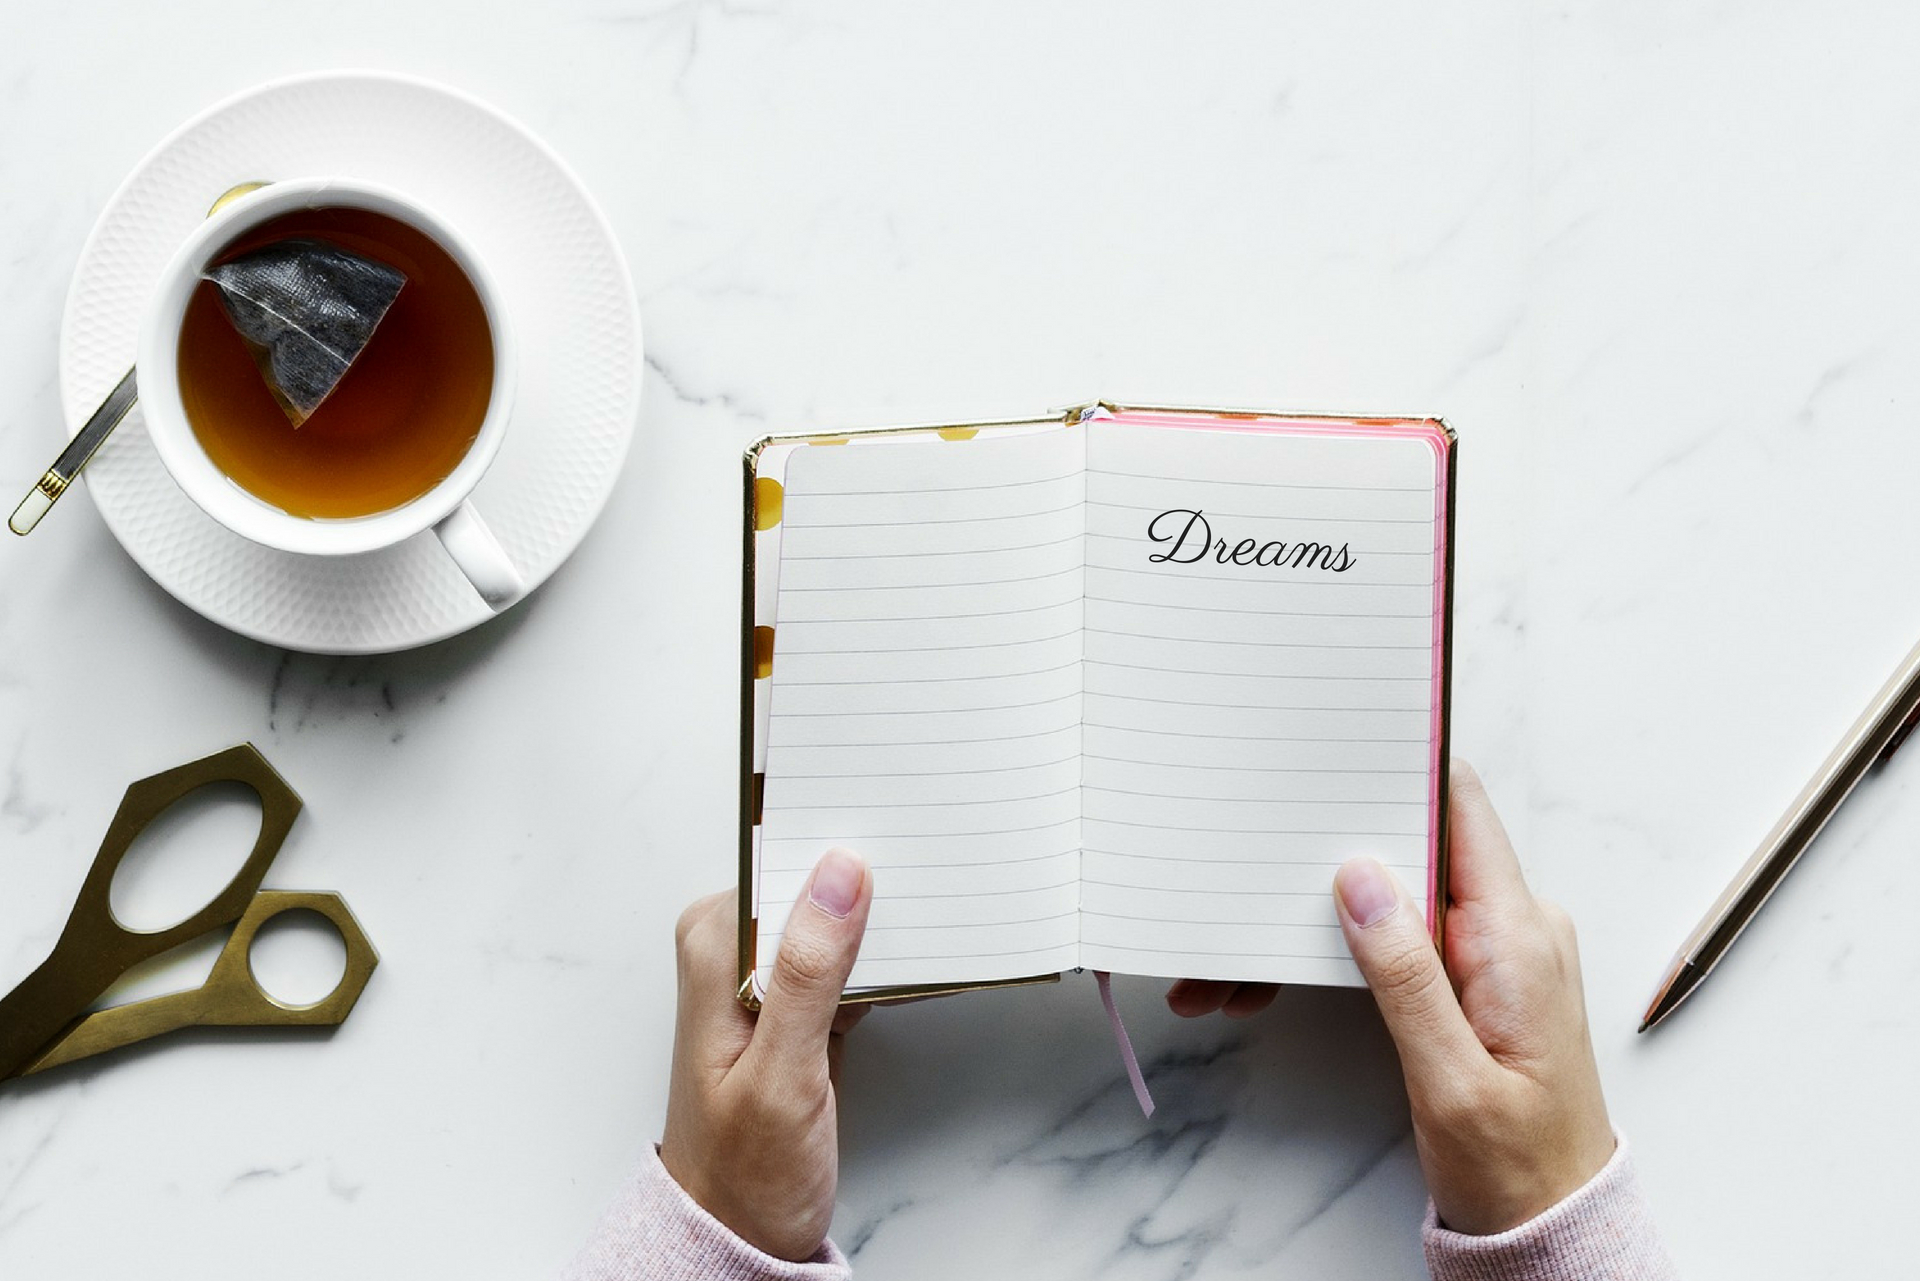 FREE guide to goal setting that works - The Dreamlist is a 5 day coaching program, via email, where you'll learn my technique to goal setting that works. It's free and you can sign up here.